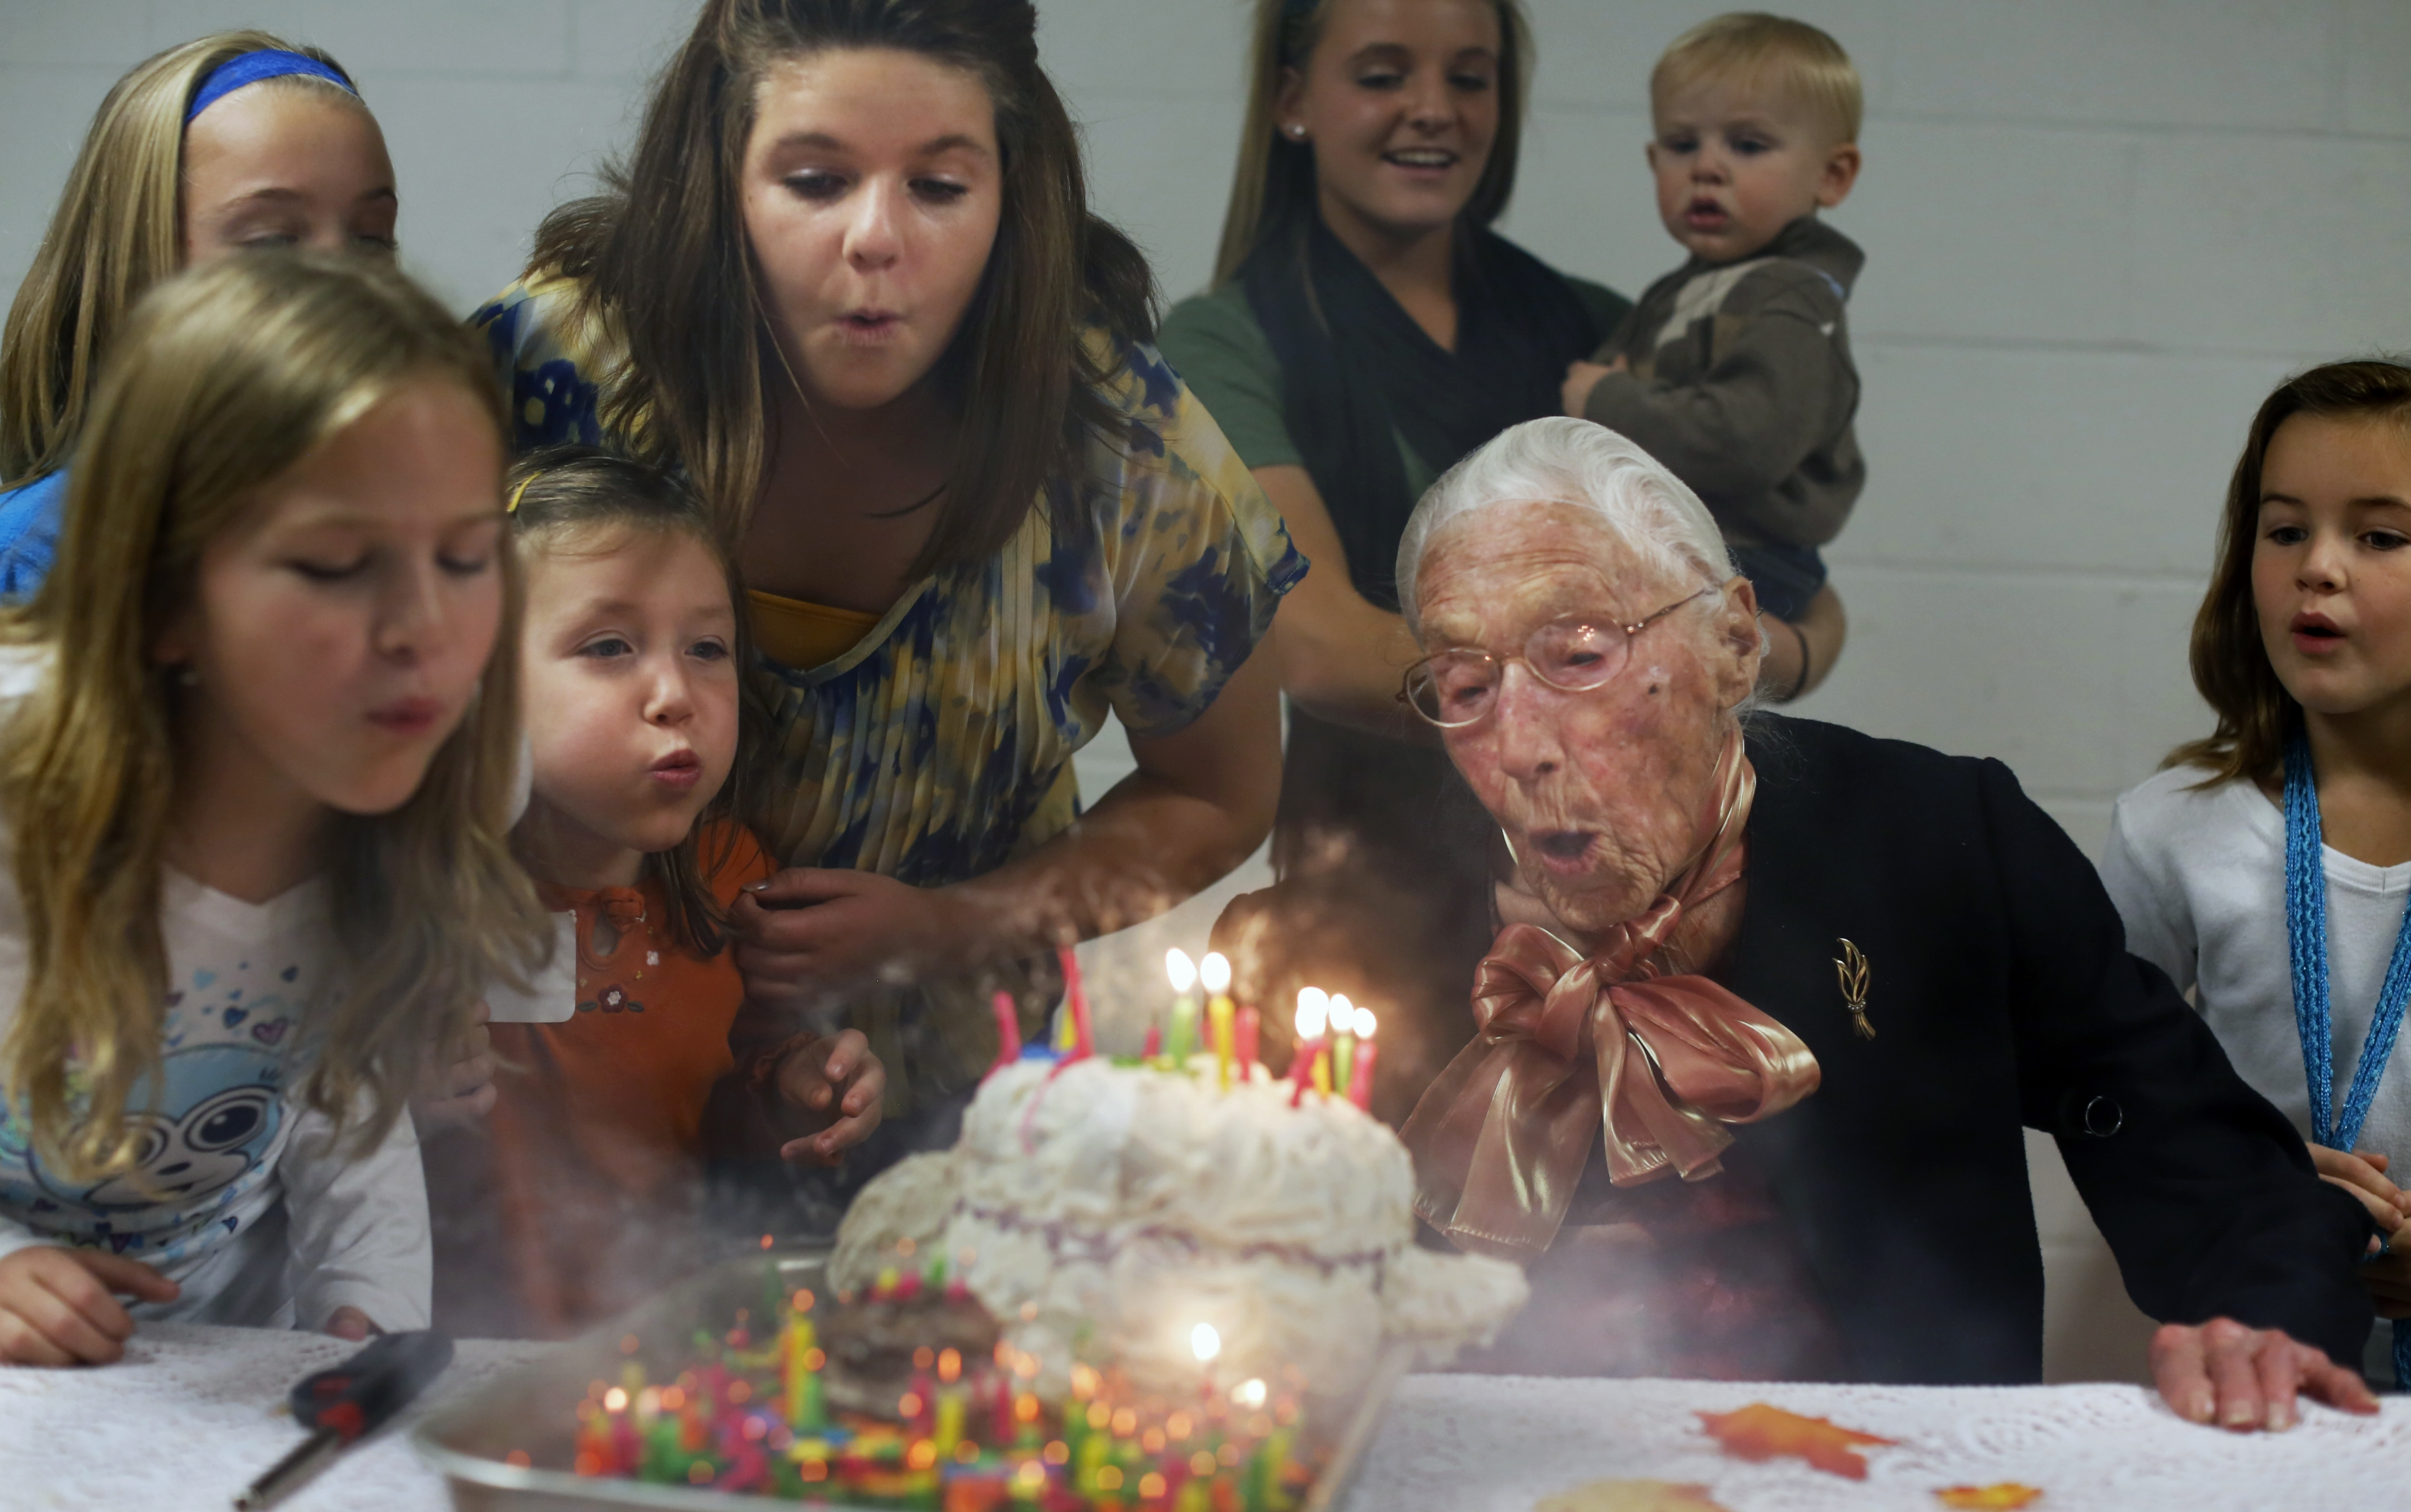 Anna Stoehr is photographed blowing out the 112 candles on her birthday cake with the help of her great grandchildren and about 180 guests on Oct. 14, 2012 in Millville, Minn. She is now 113.